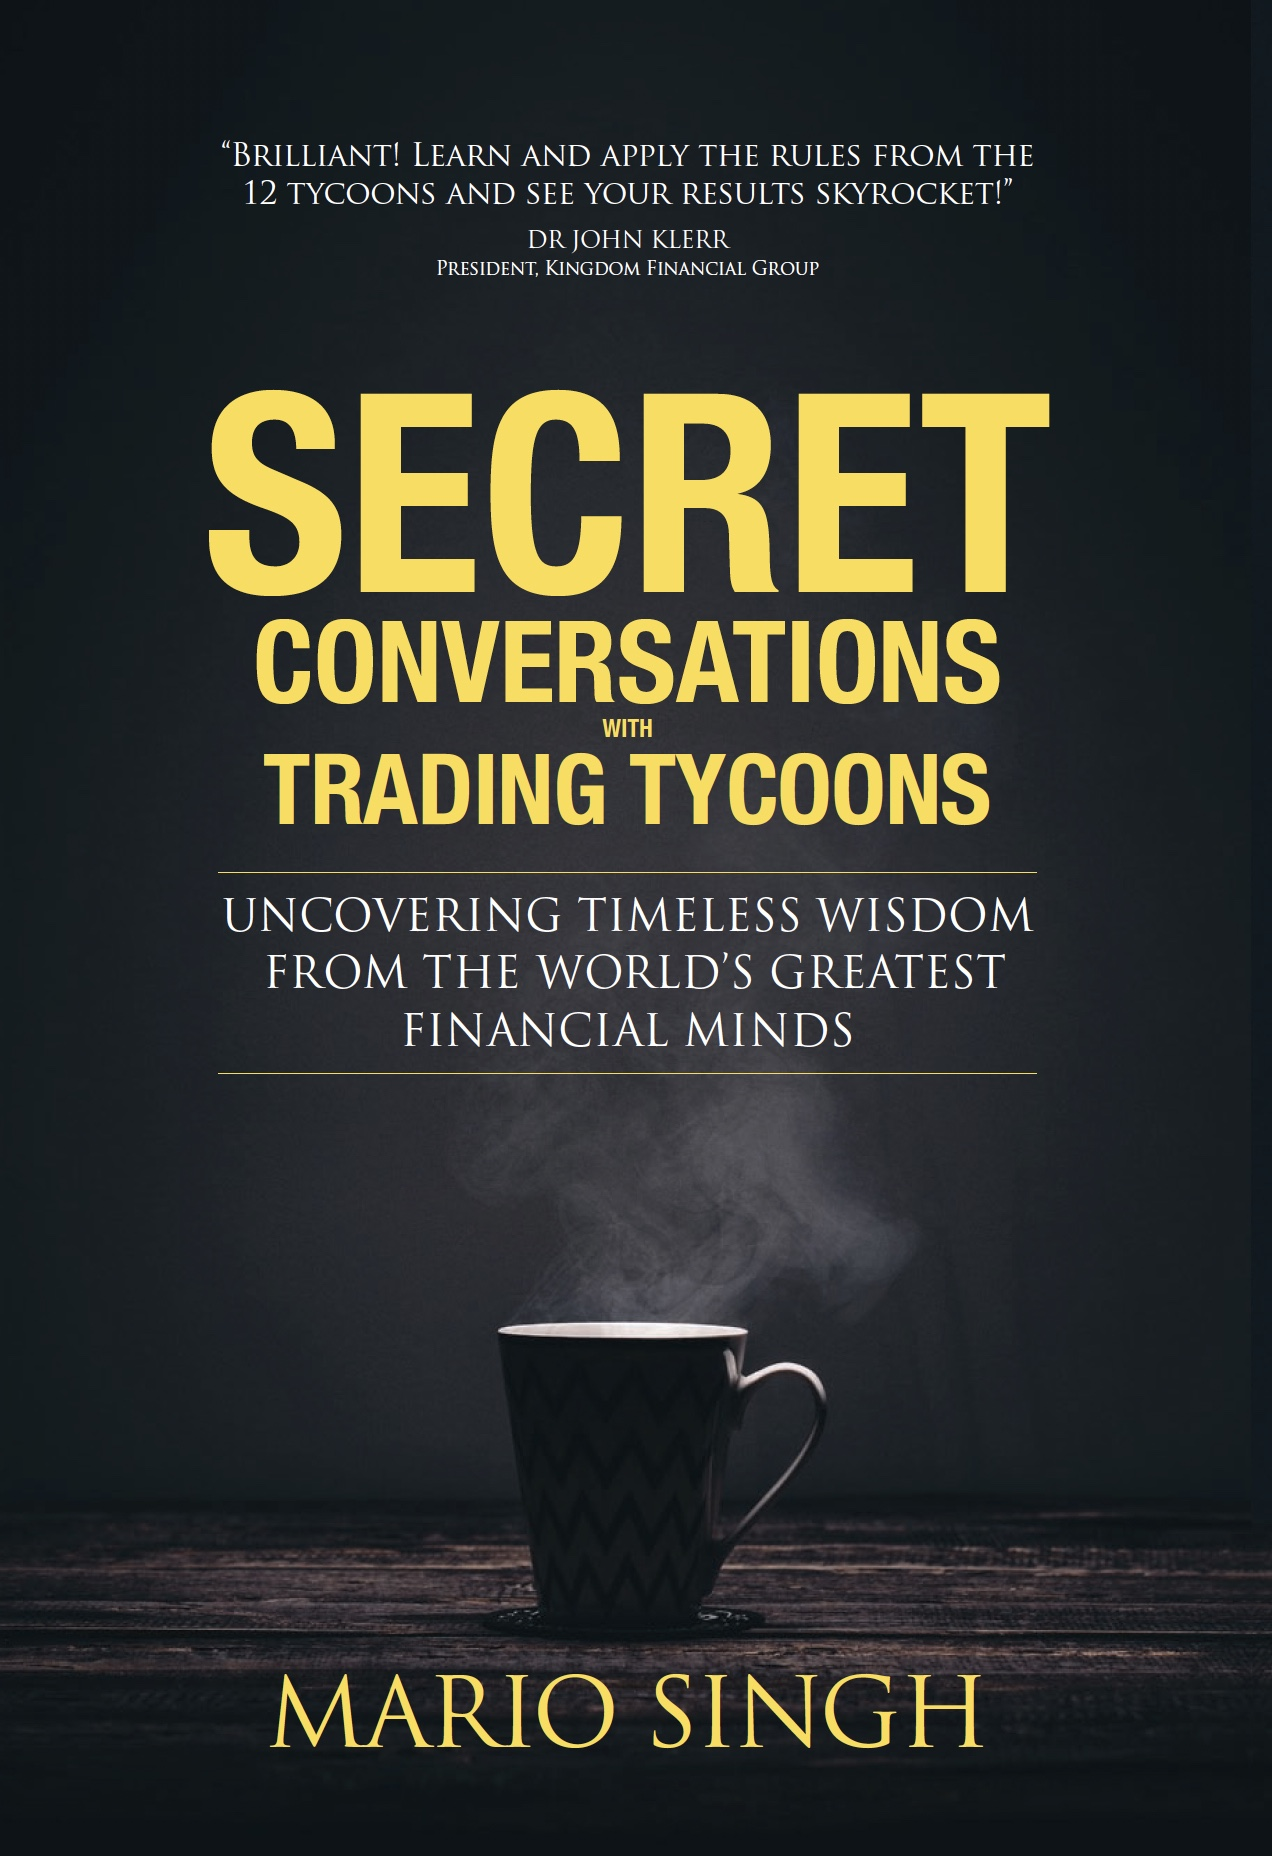 Secret Conversations With Trading Tycoons Write Editions